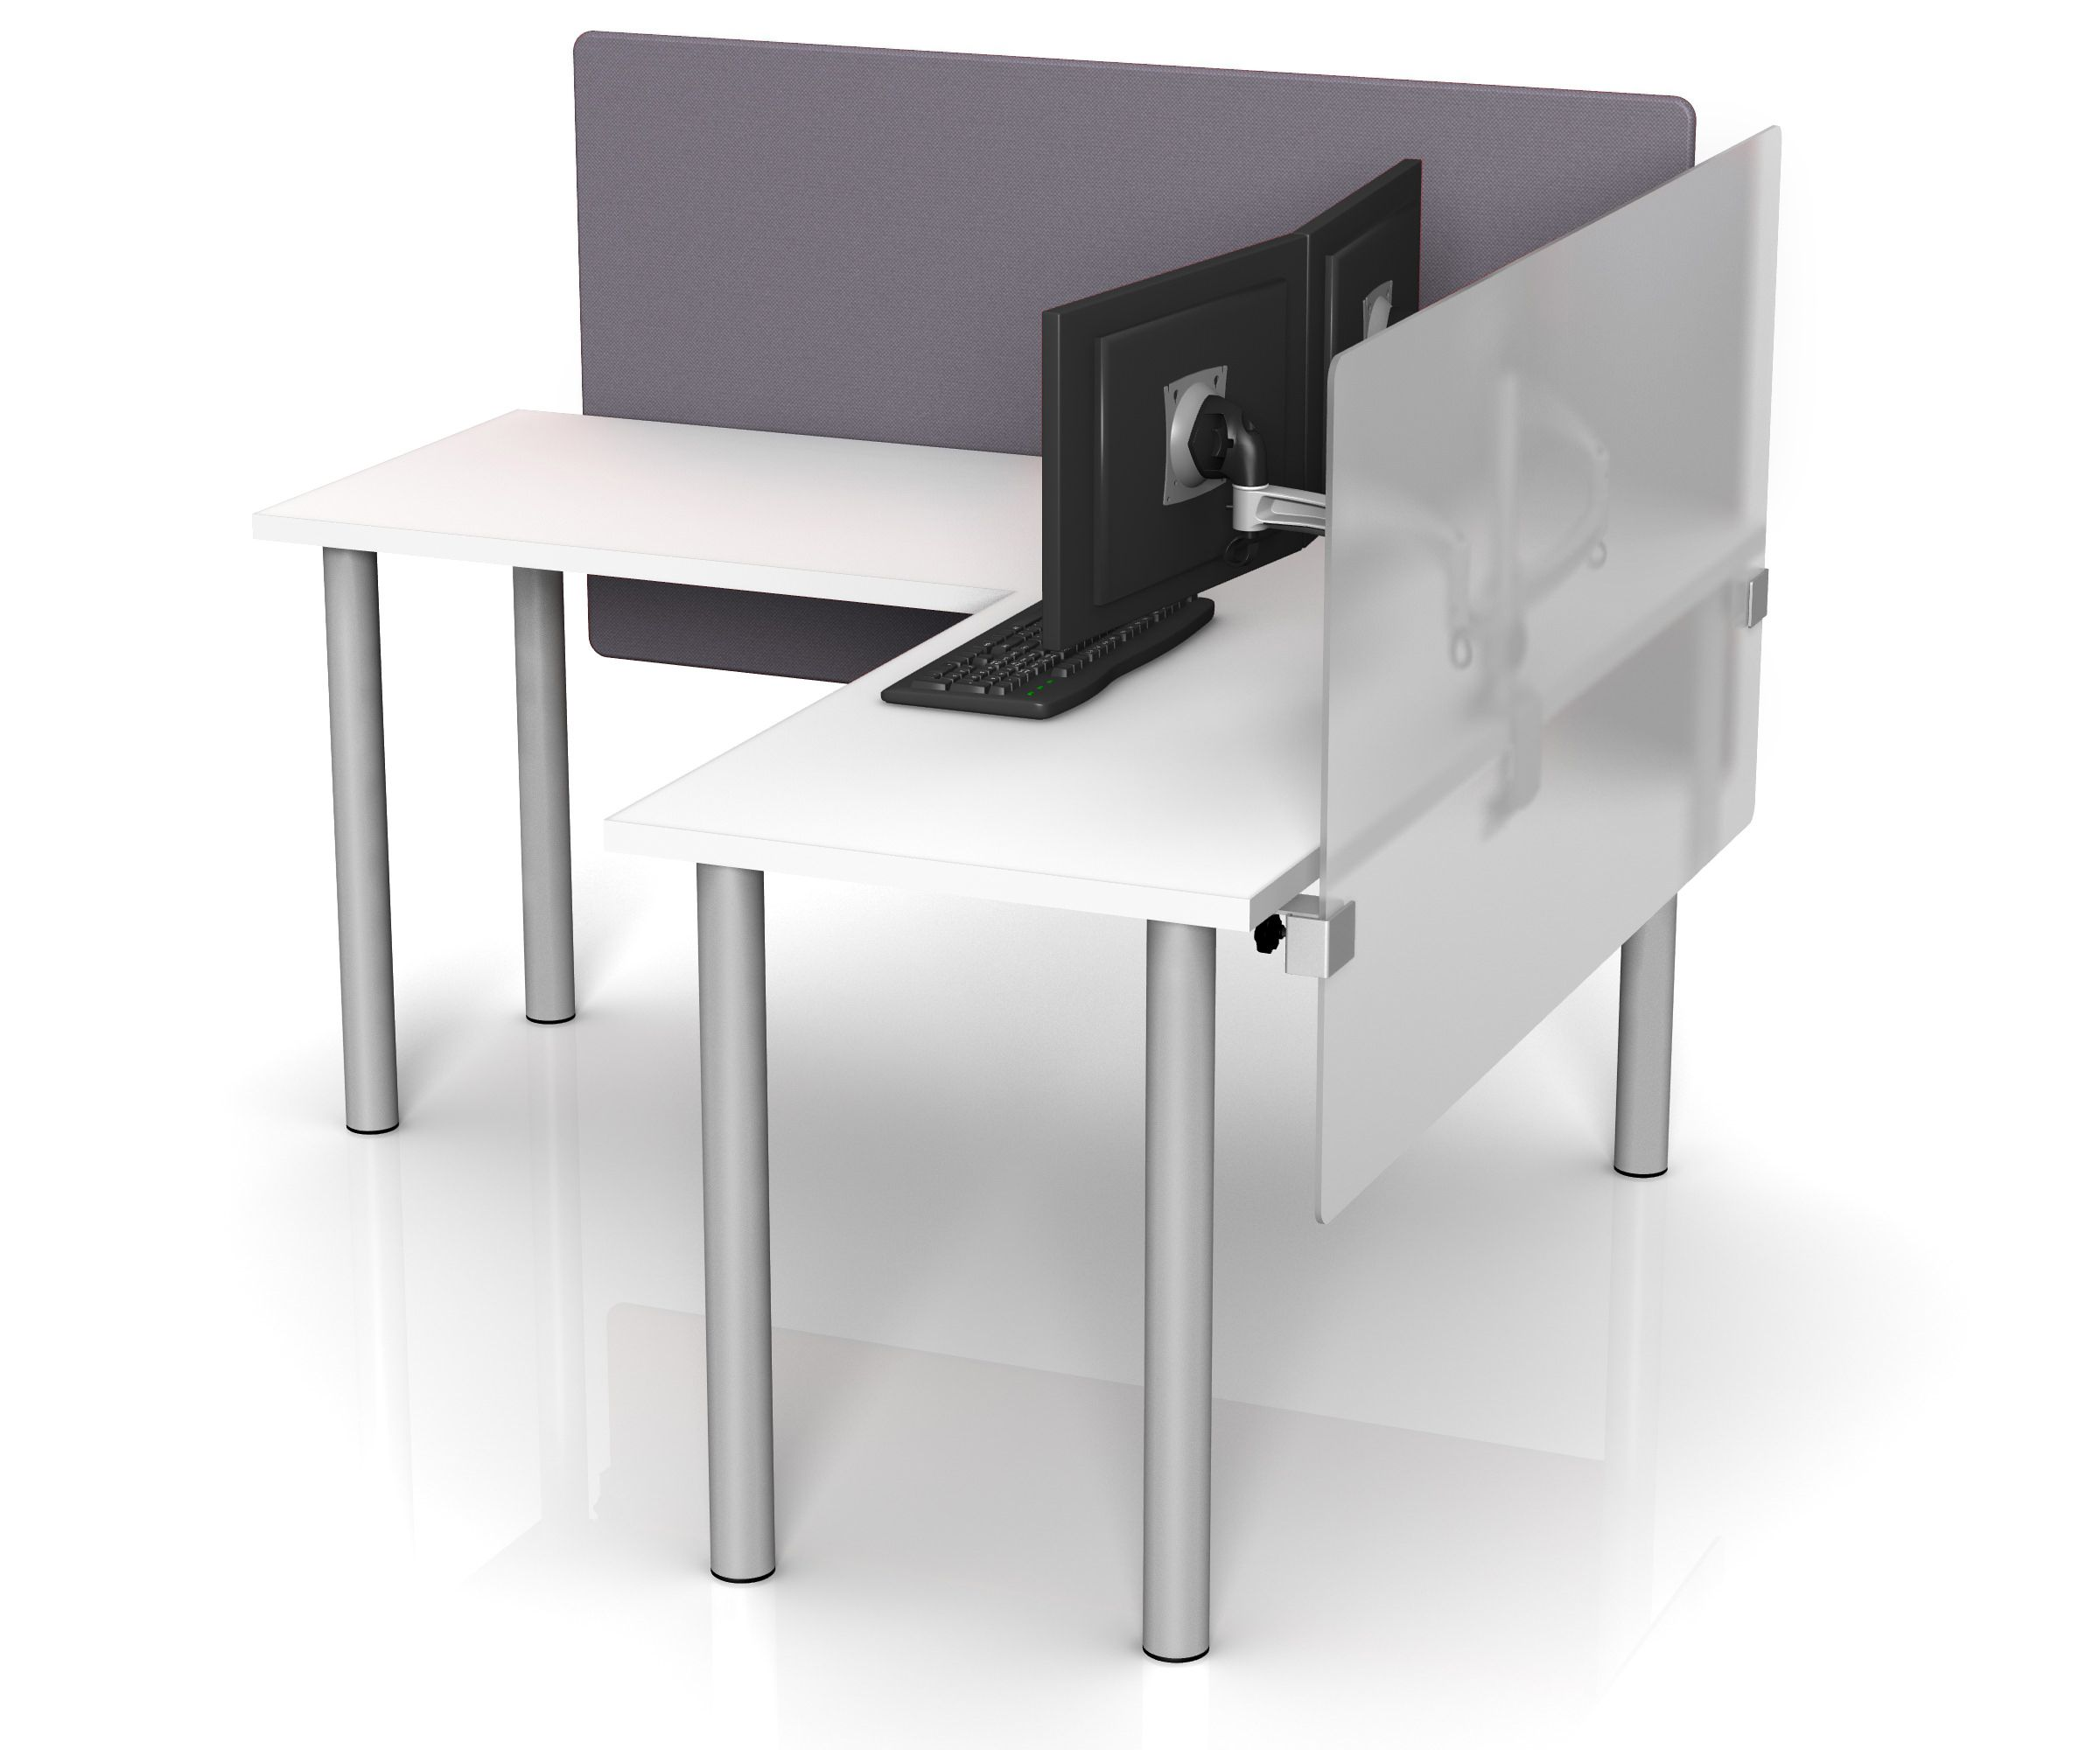 Design Acrylic Desks height adjustable desk dividers in fabric and frosted acrylic by merge works